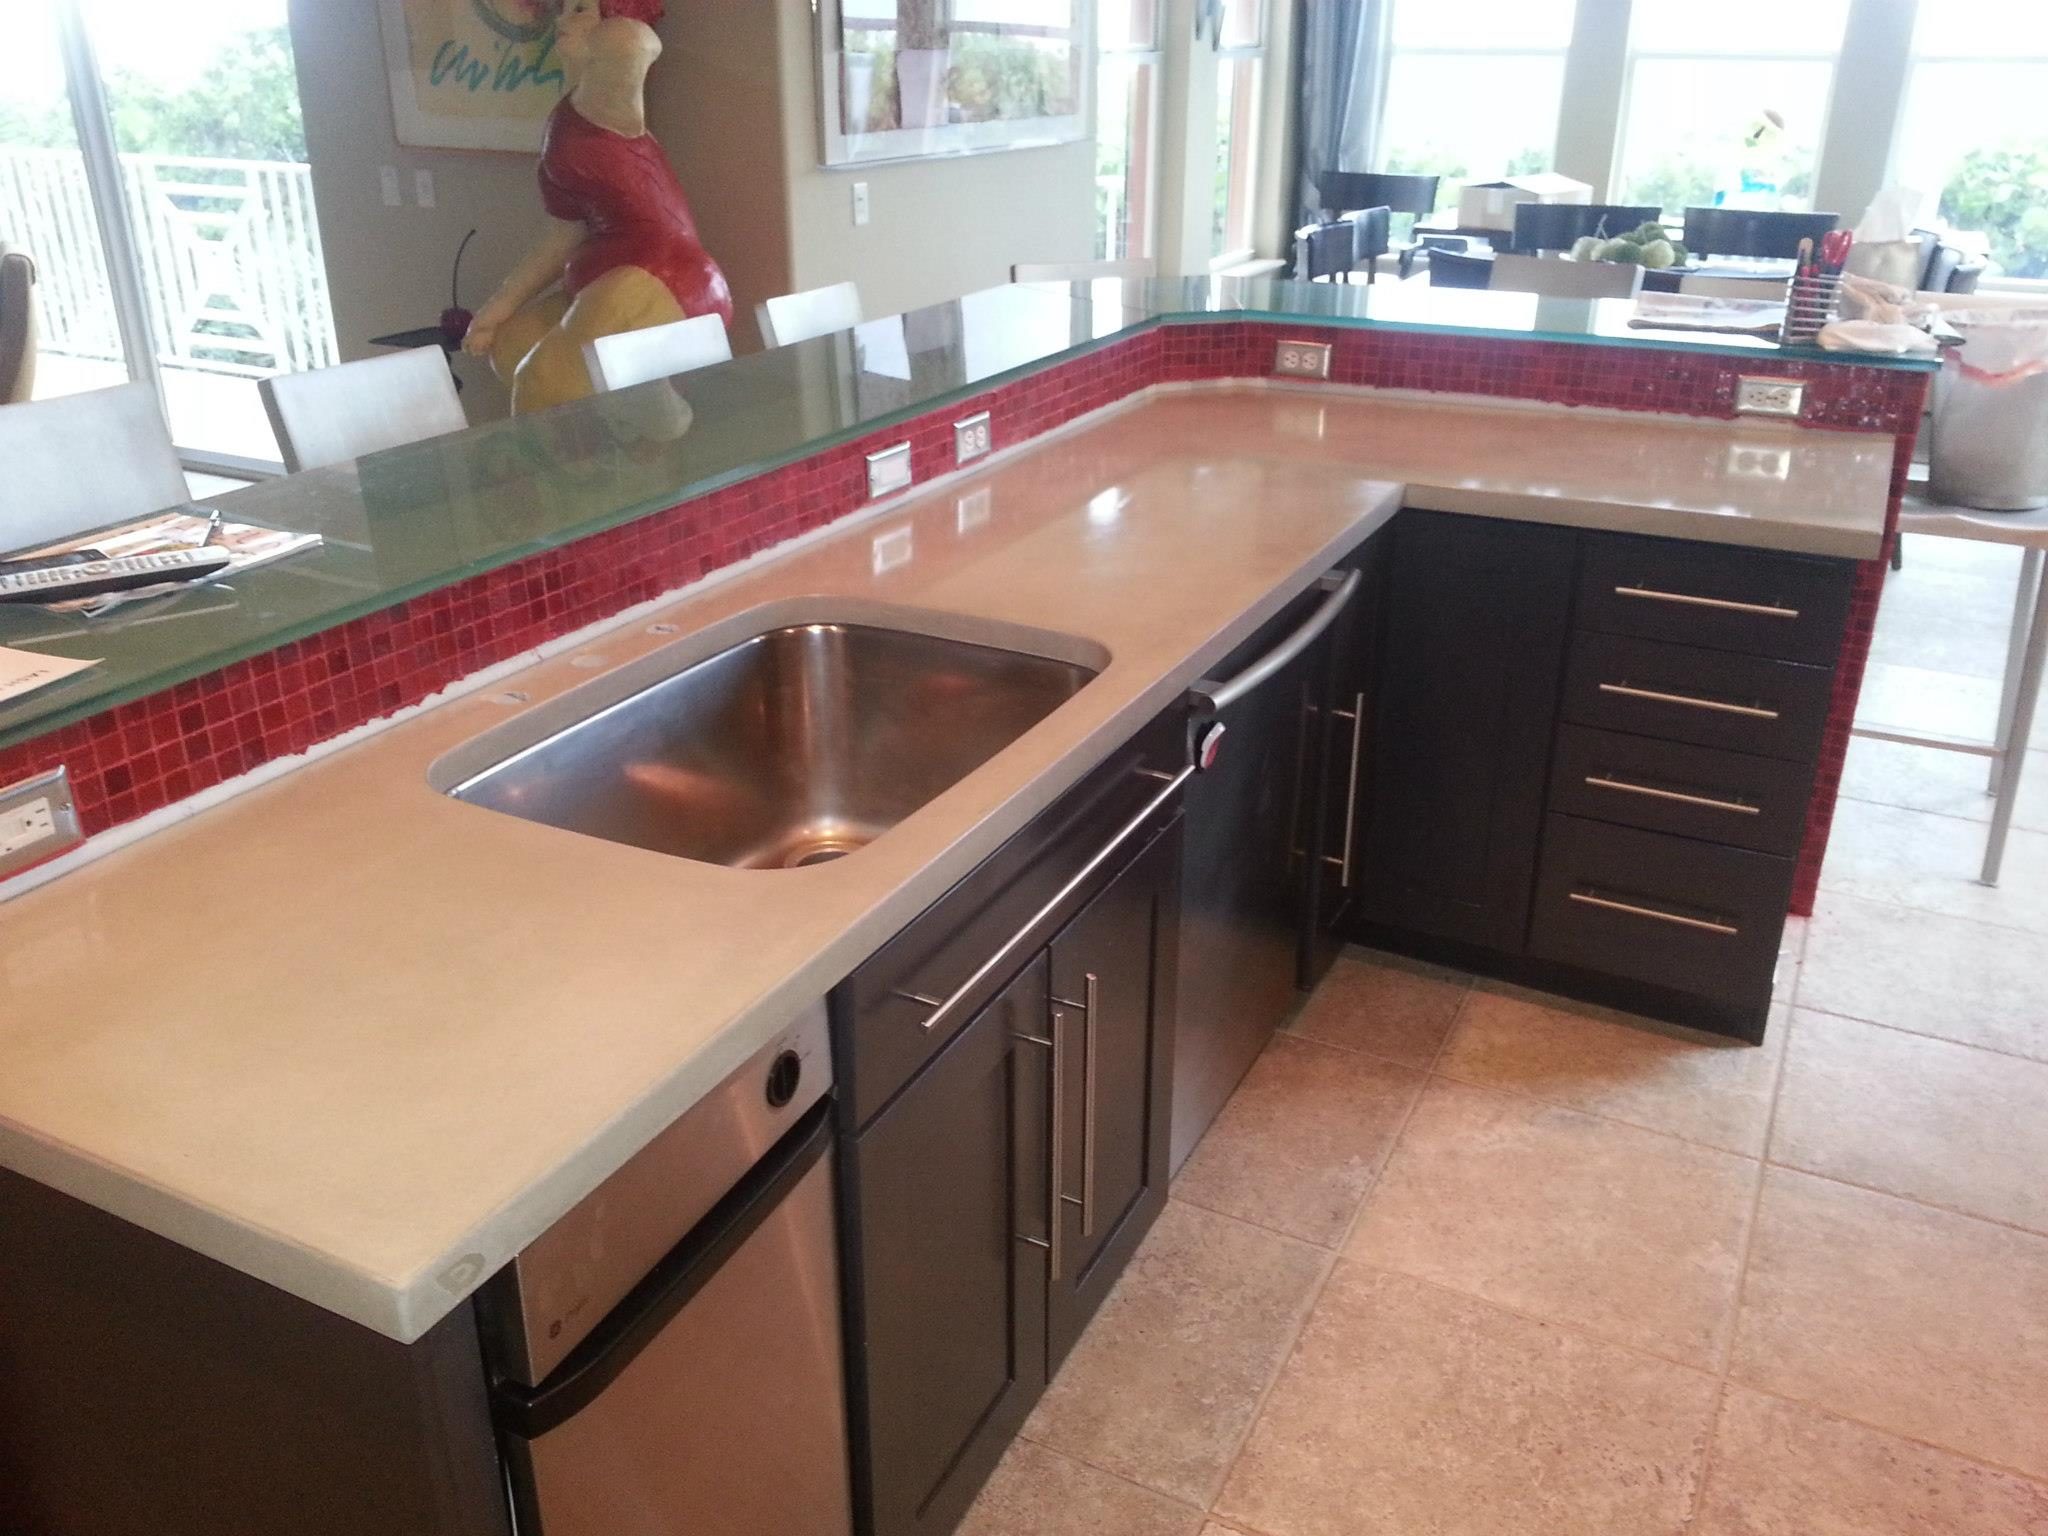 granite bathroom with countertops countertop quartz imagine kitchen dream smith polishing or rondas your